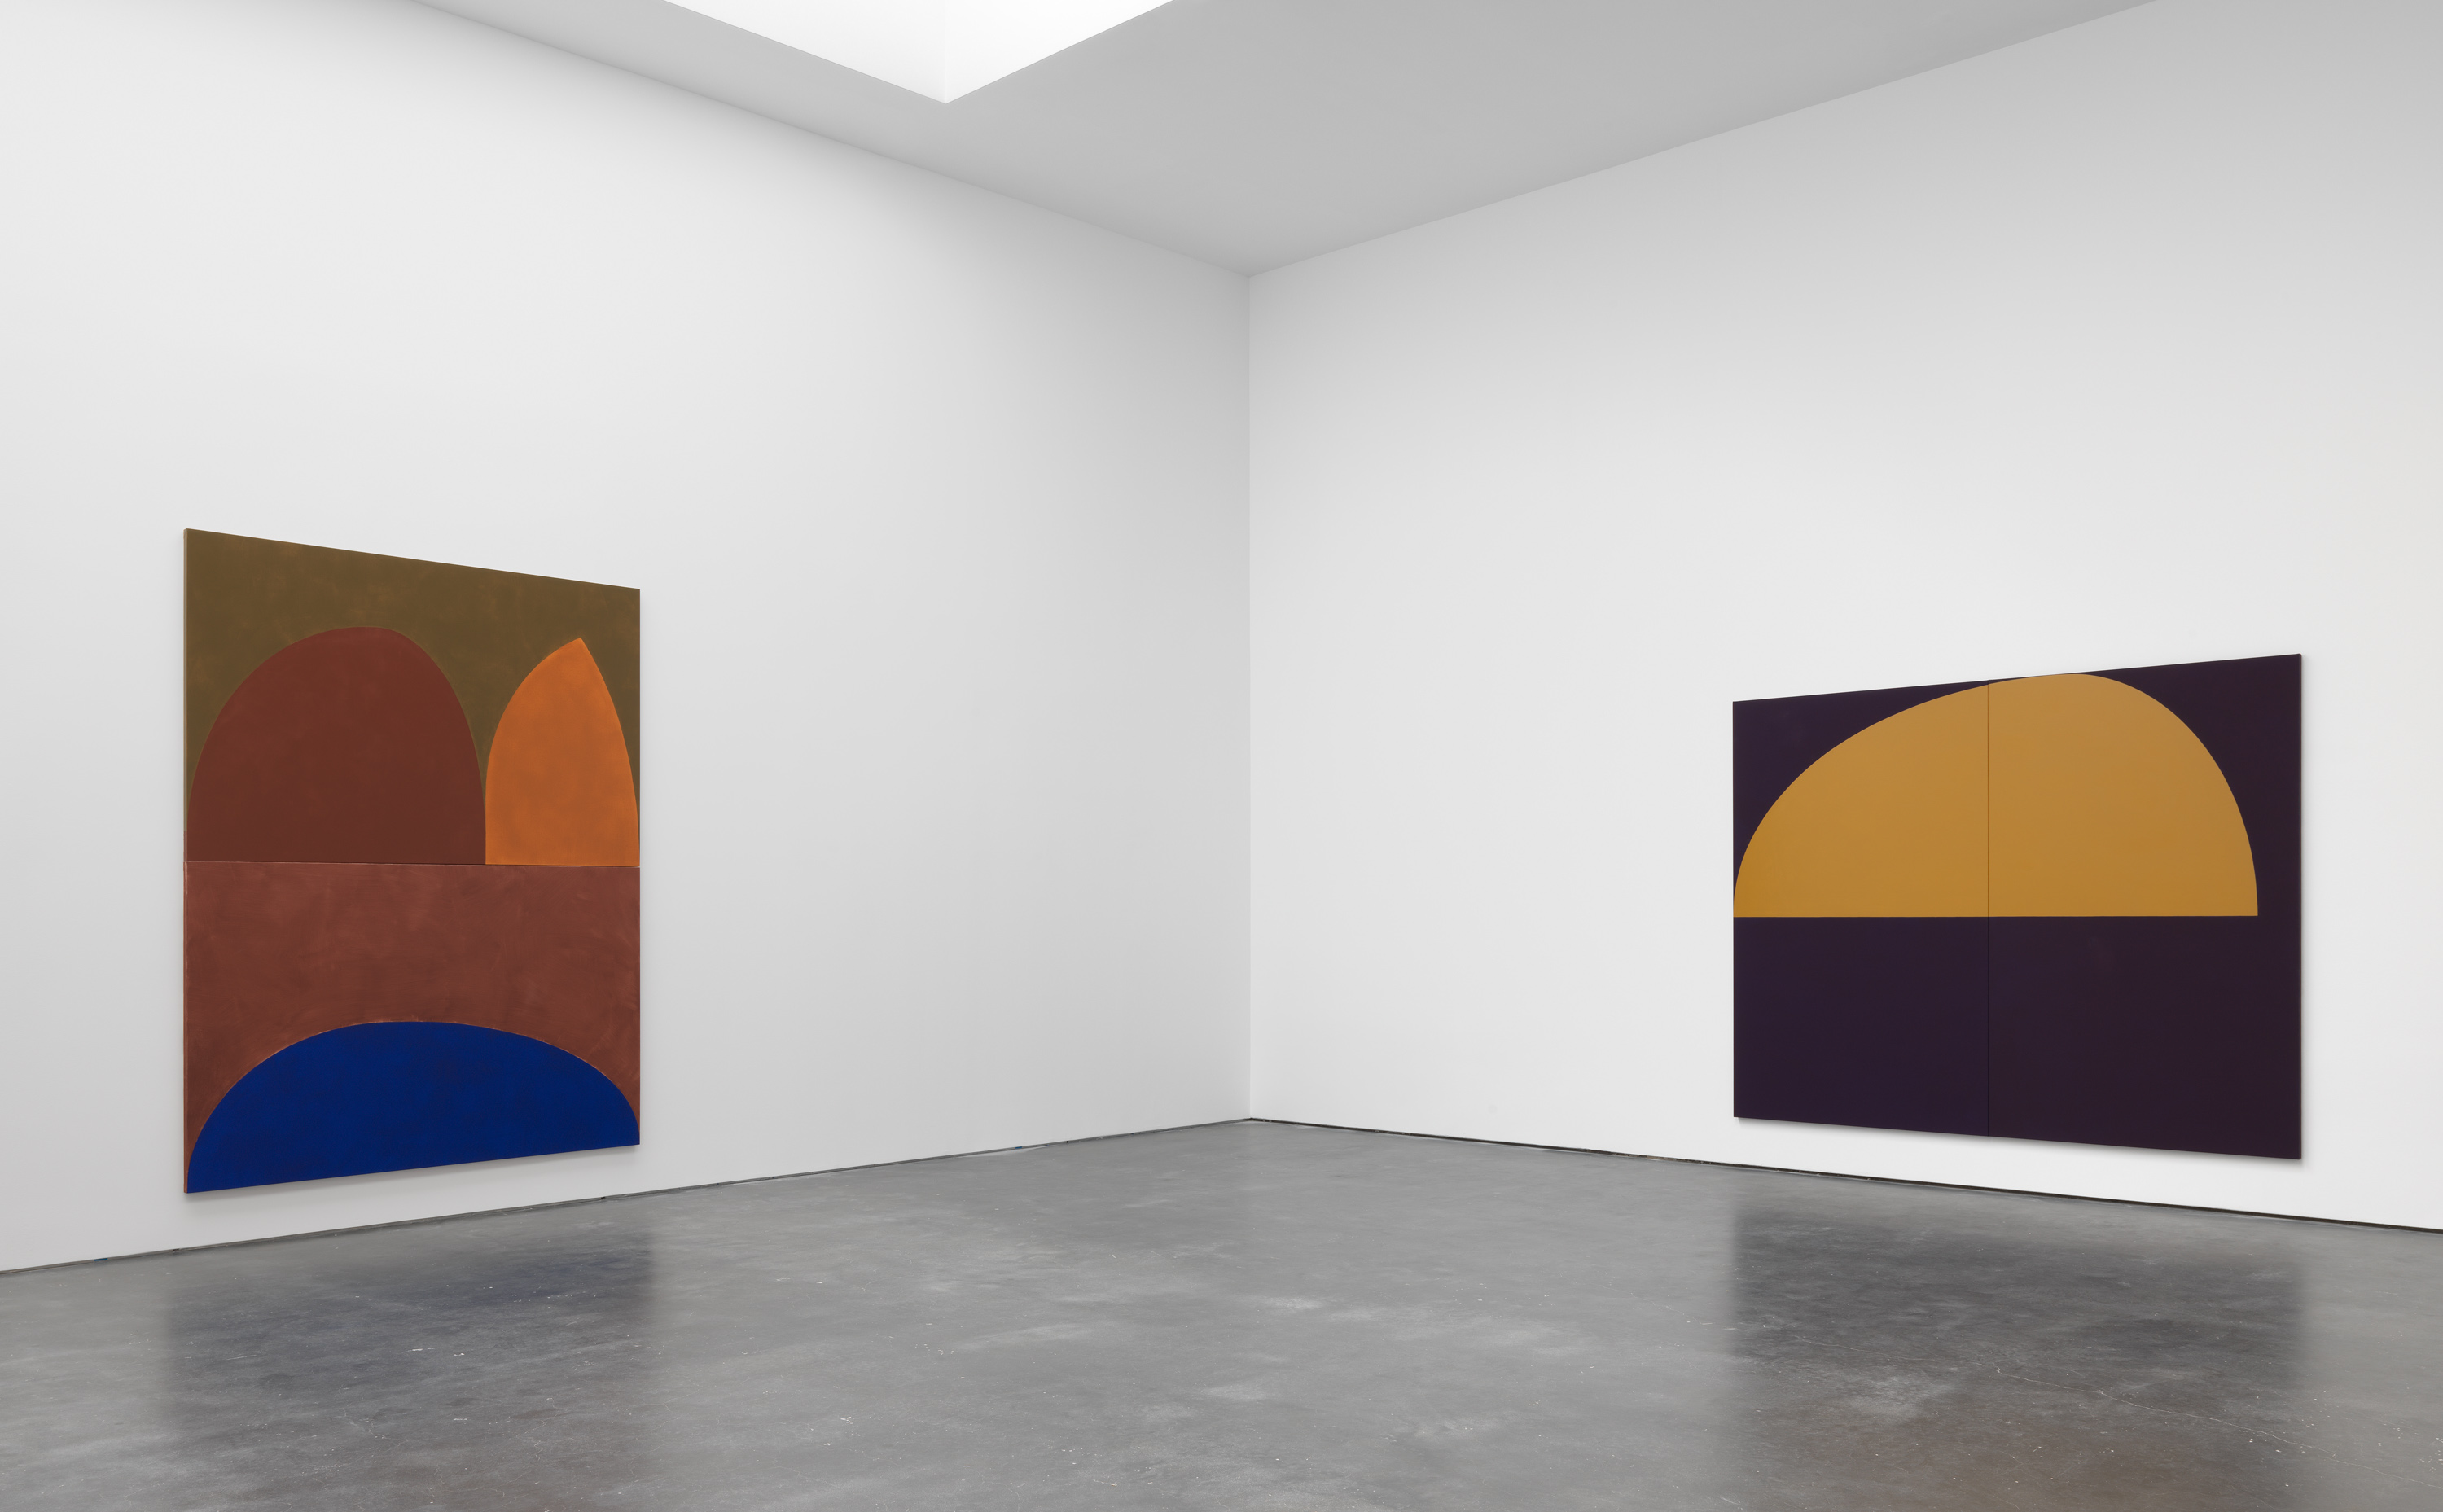 Installation view 1, Suzan Frecon: oil paintings, David Zwirner, New York, 2020 Courtesy David Zwirner